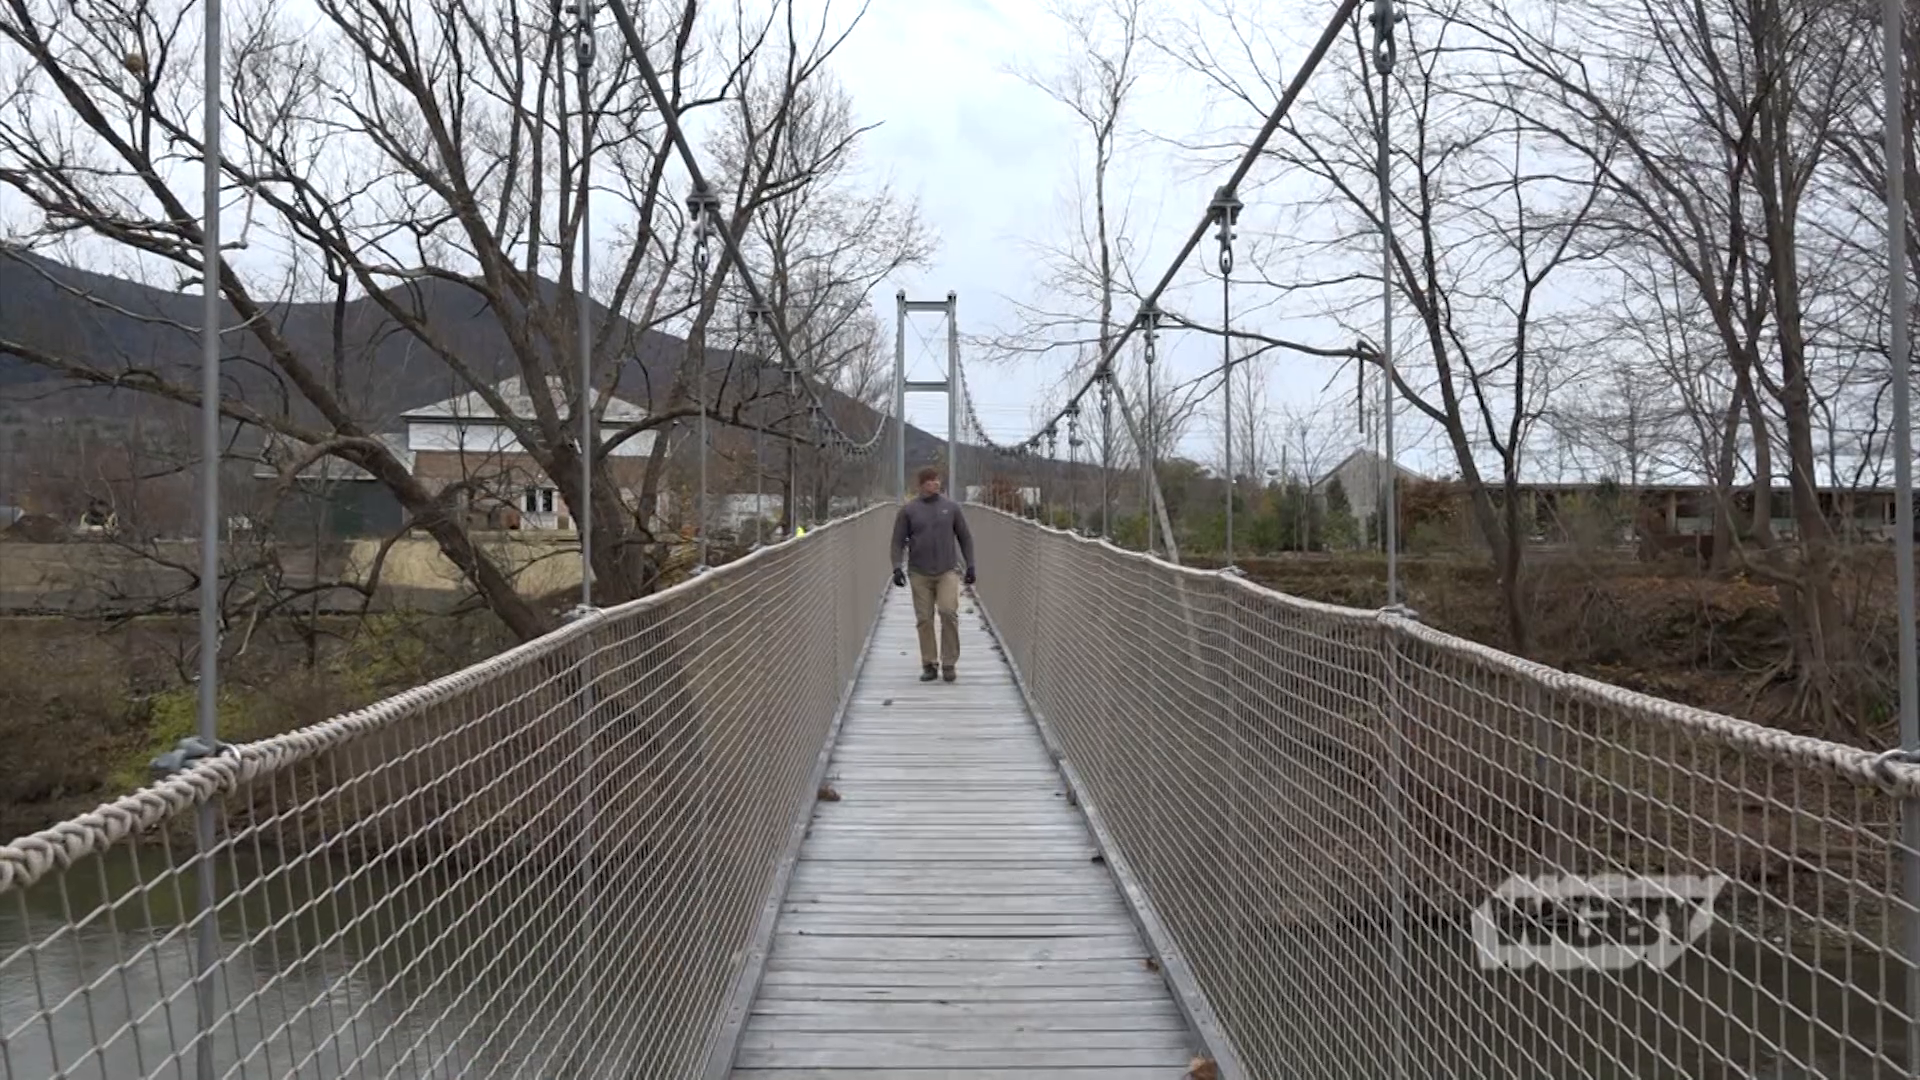 Explore how the Hoosic River Revival Group plans to revitalize both the riverway and the town of North Adams, Massachusetts.